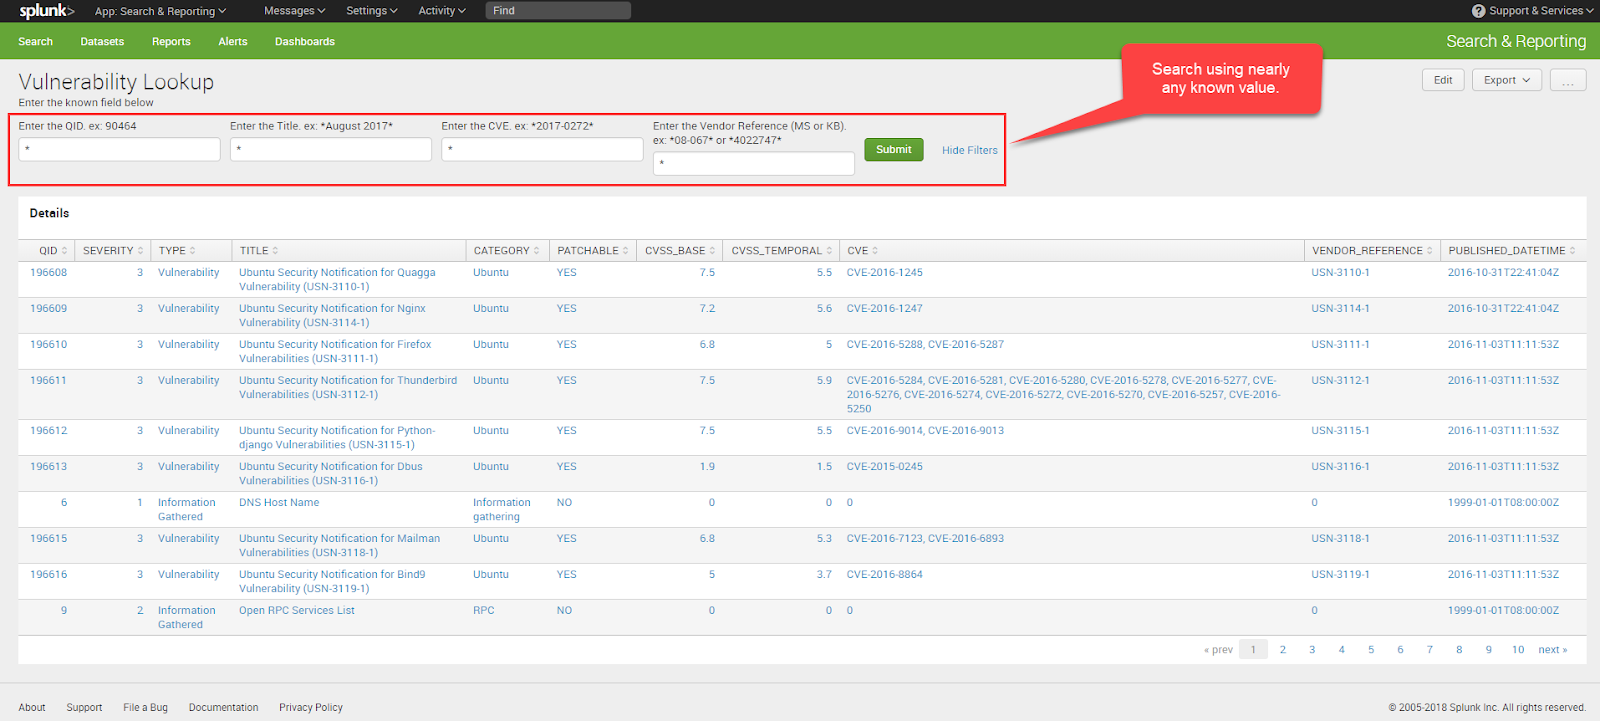 SecuritySynapse: Splunk Vulnerability Lookup Tool Using the Qualys